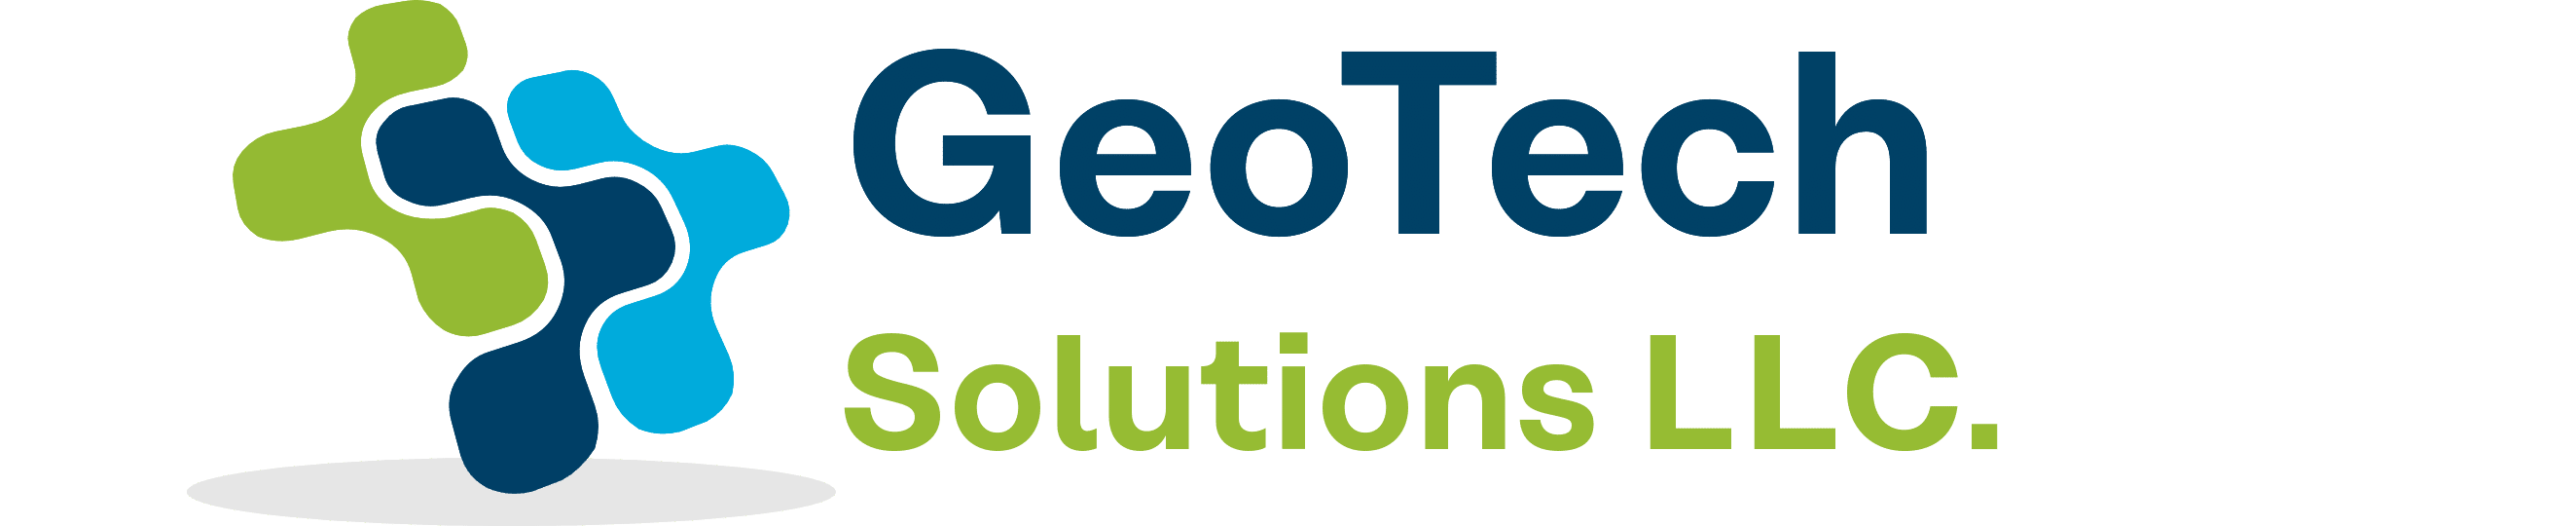 Geotech Solutions, LLC